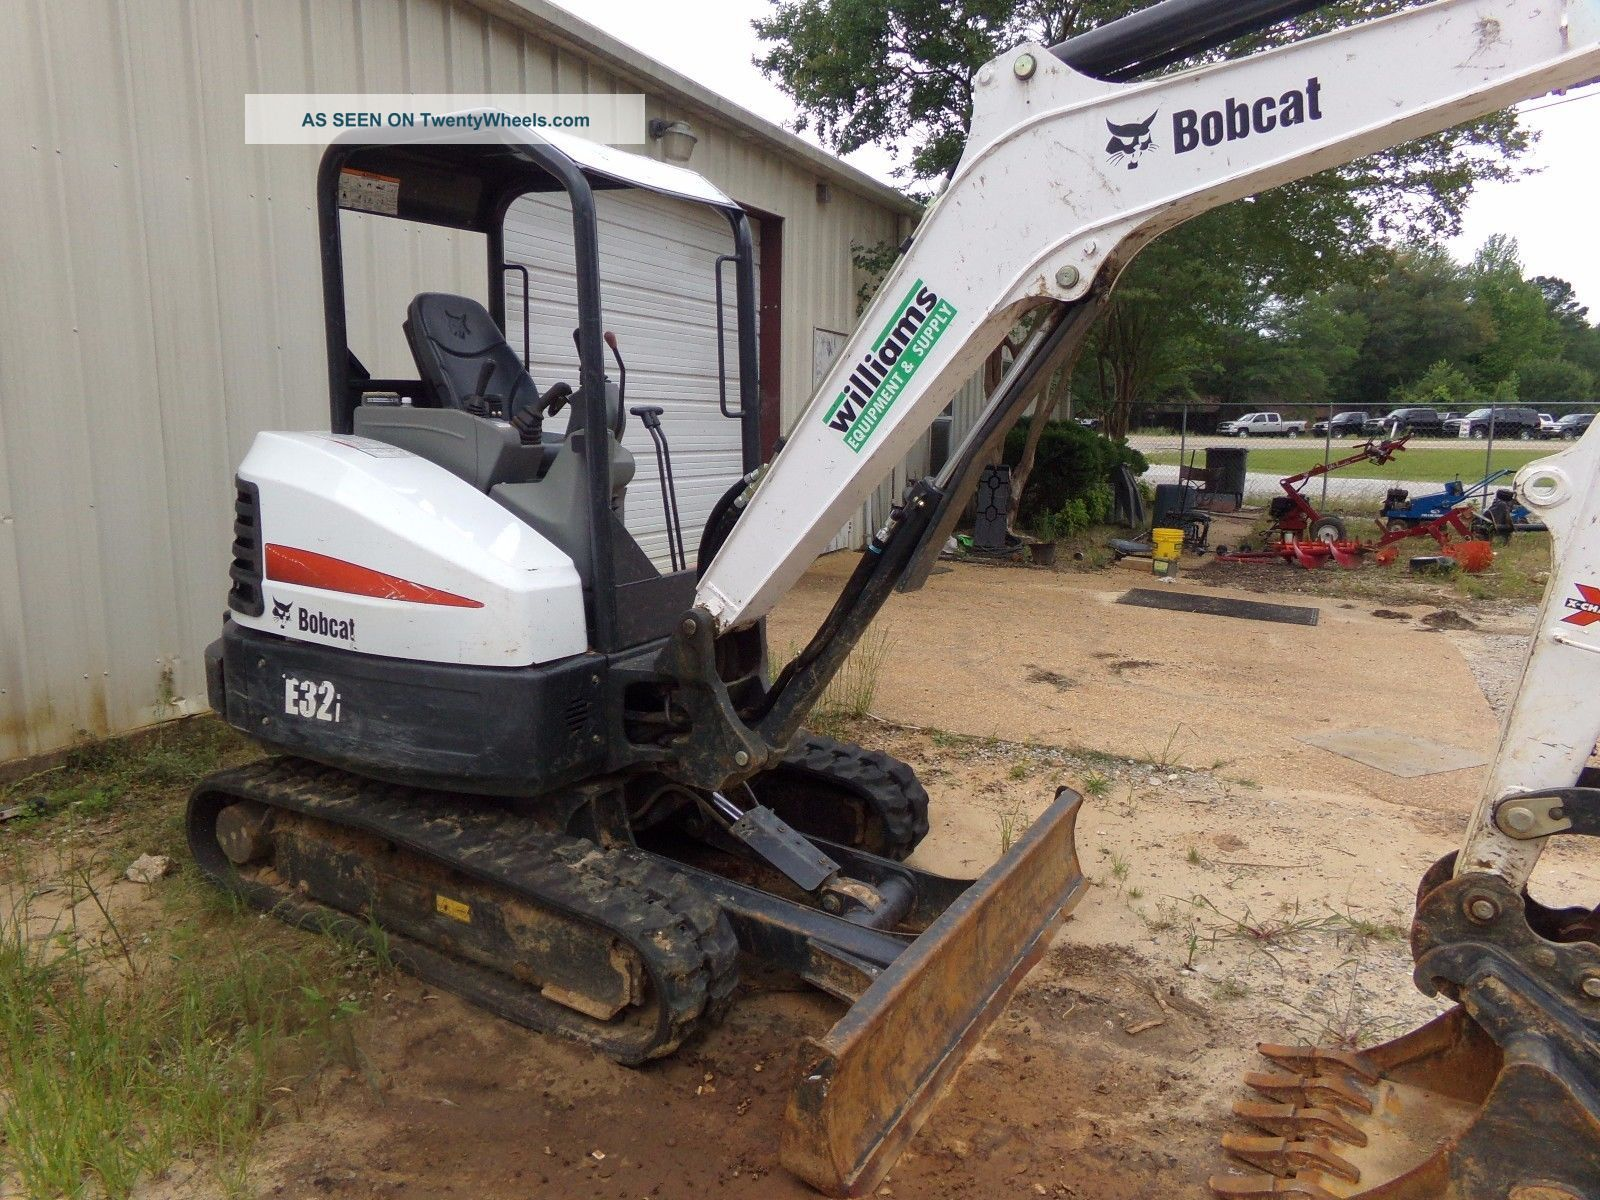 2016 Bobcat E32i Excavators photo